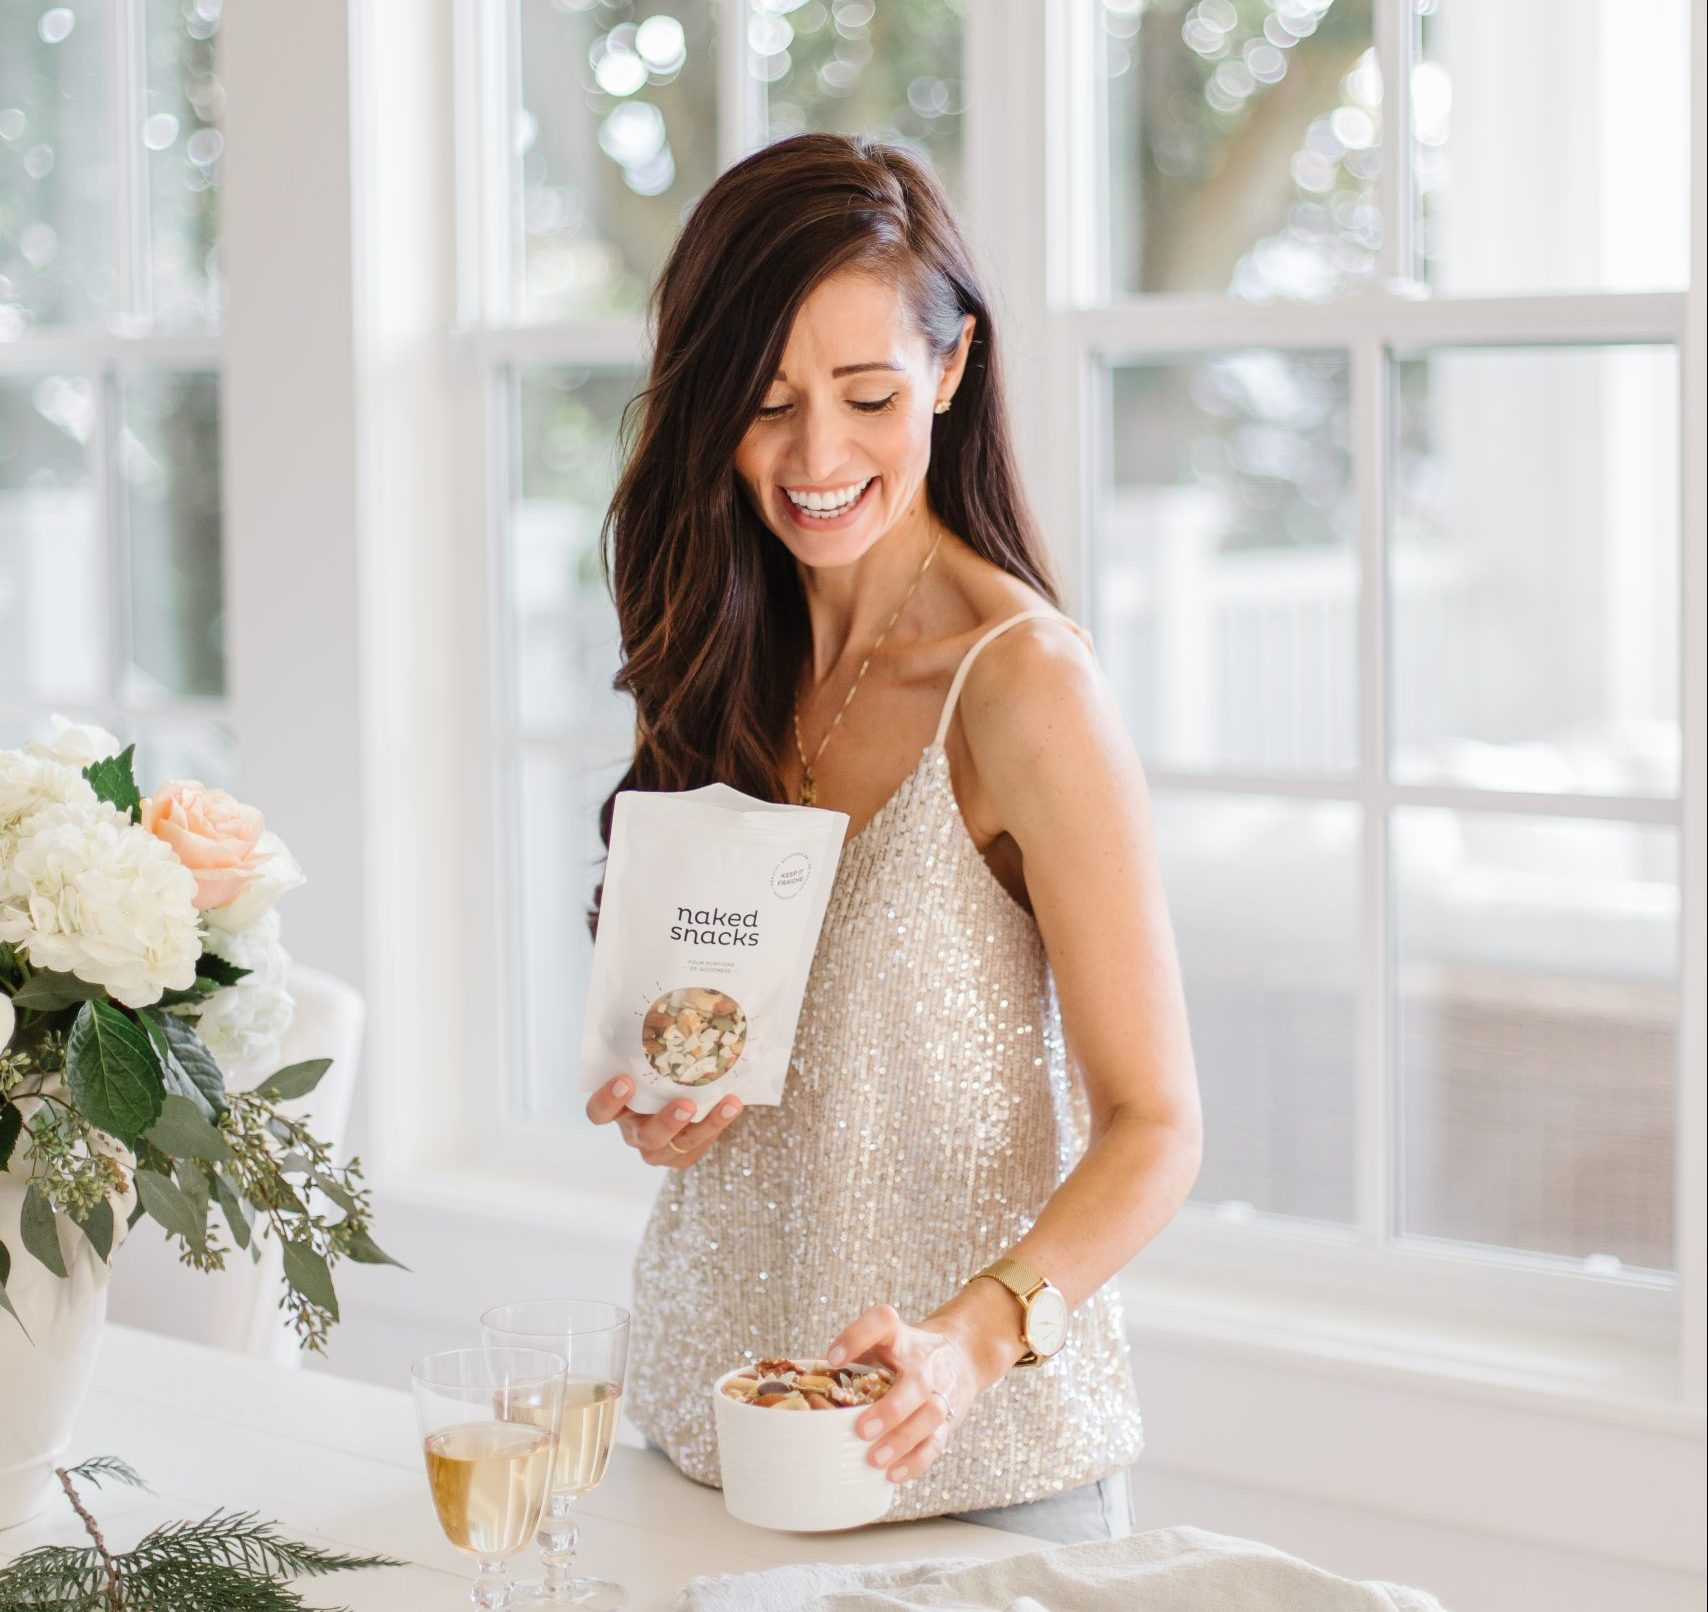 Tori Wessner holding a bag of Keep it Fraiche Snack, in a bright kitchen